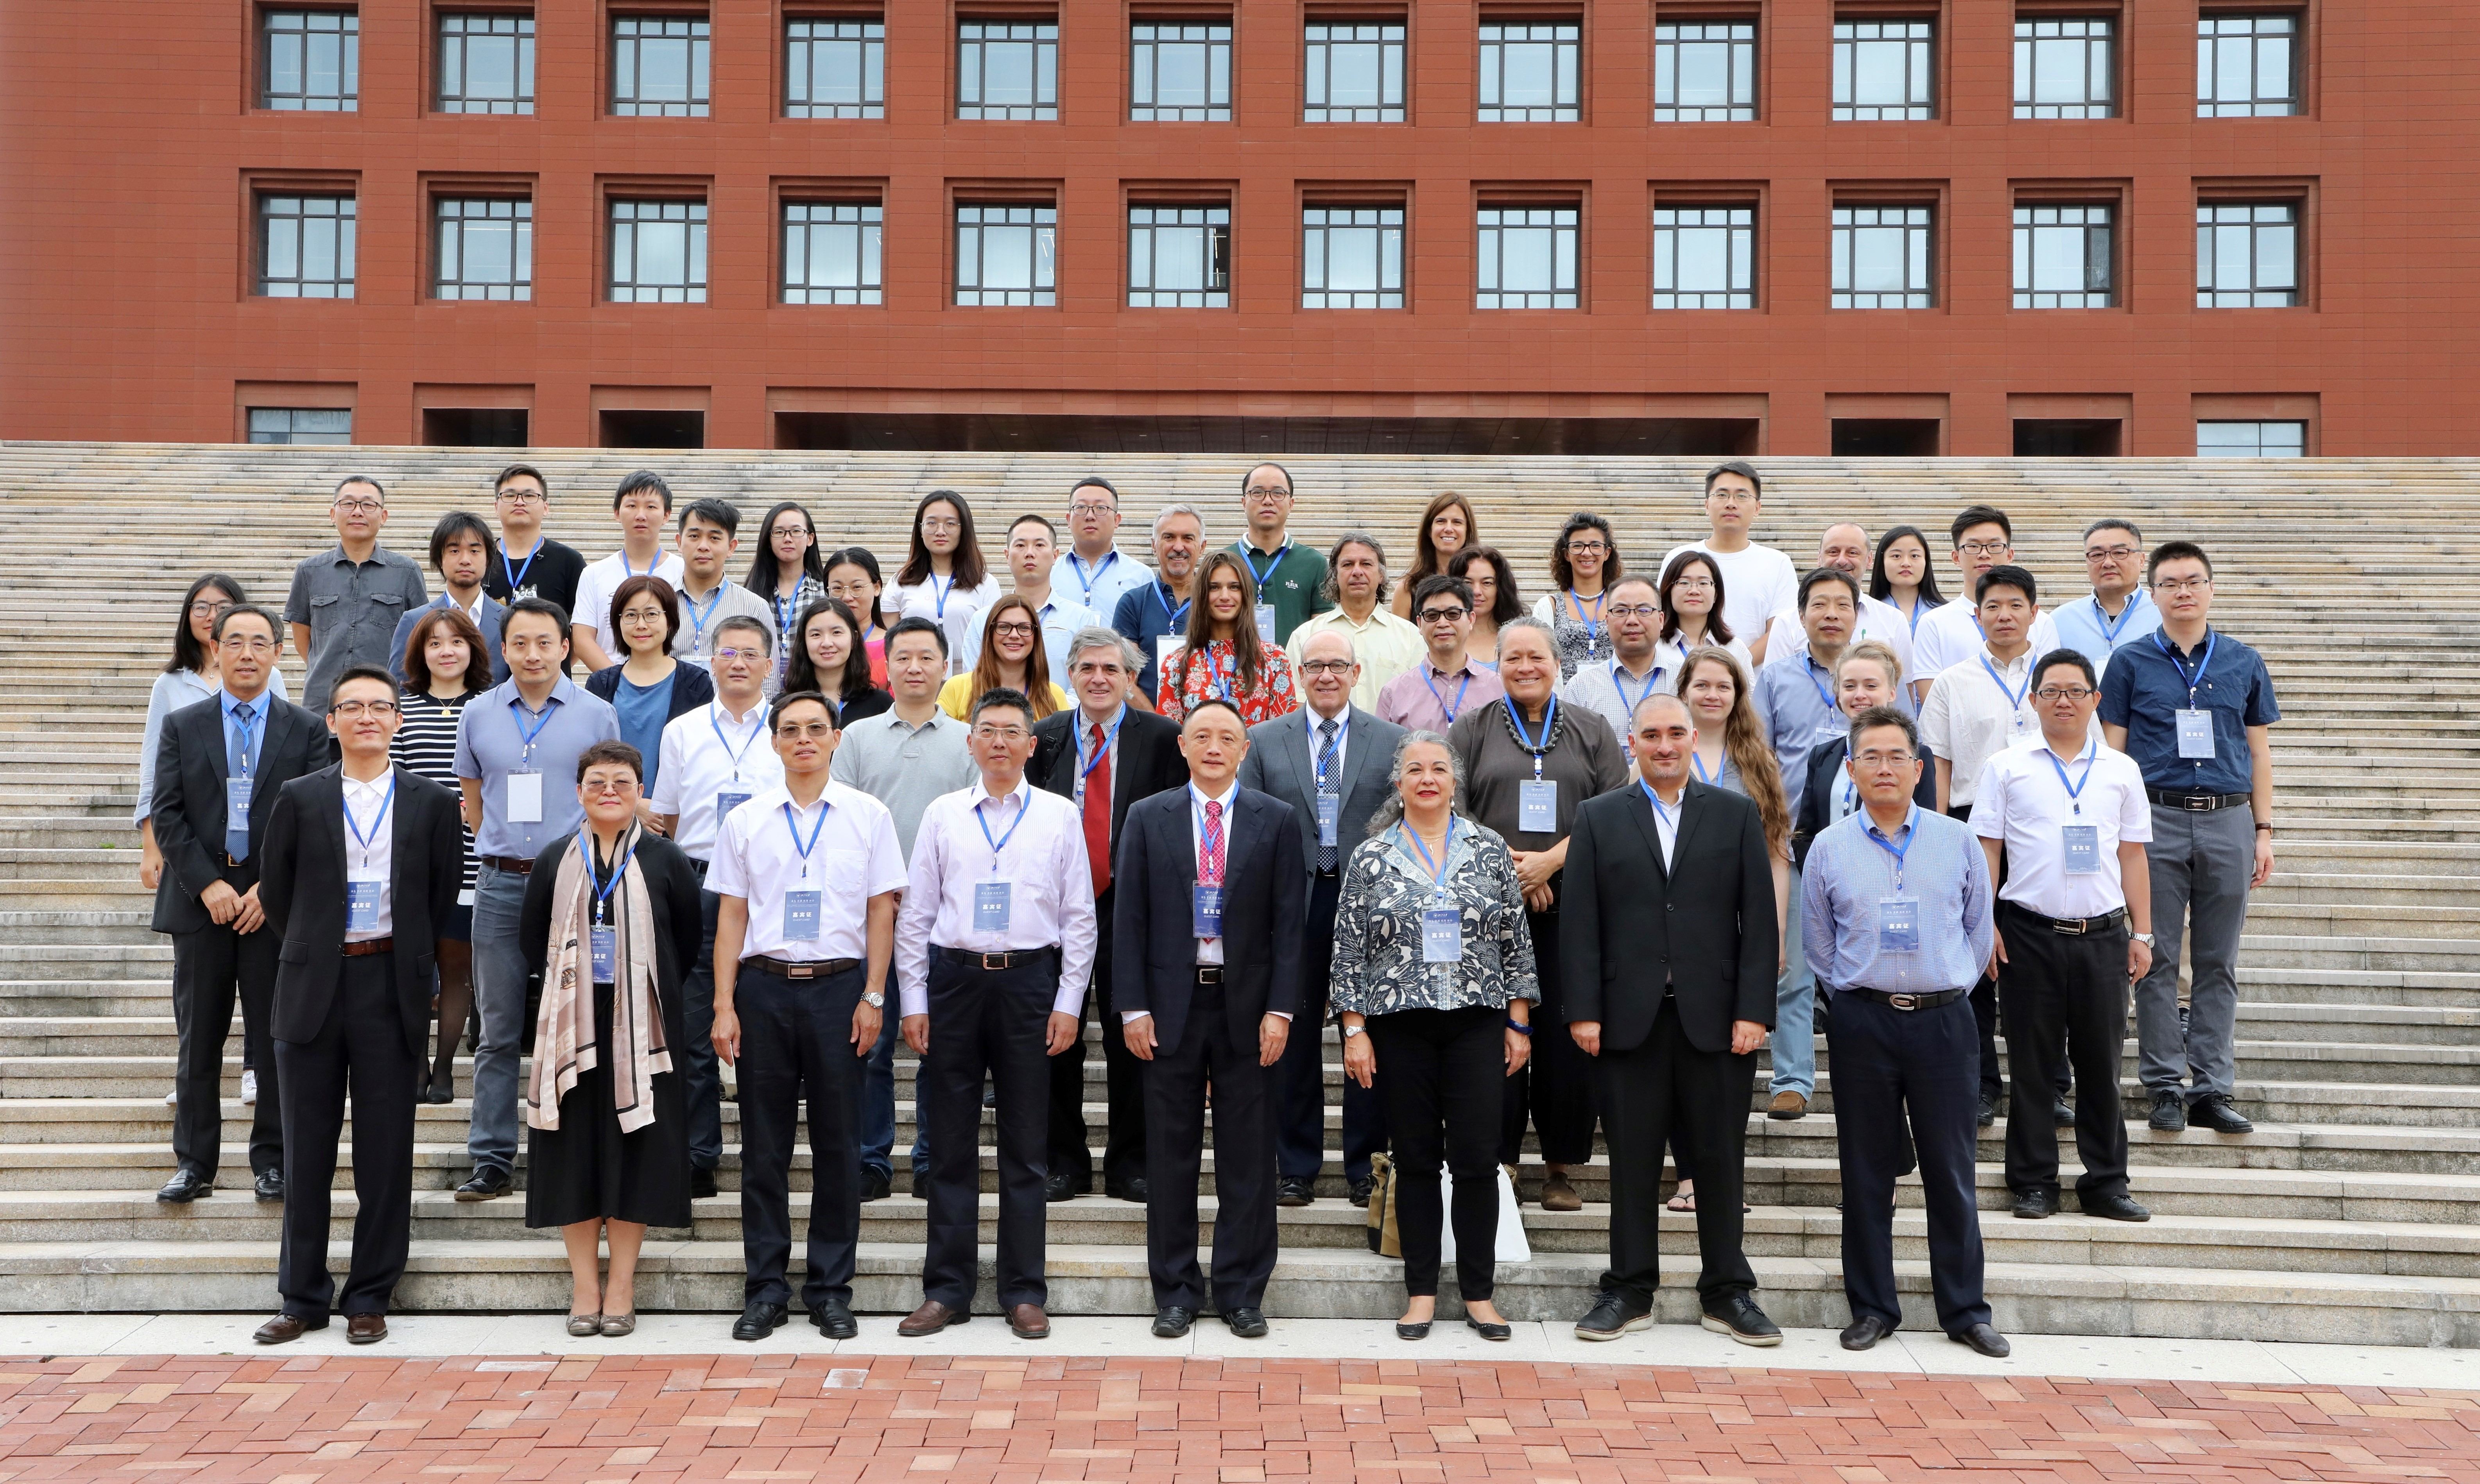 Photo of conference participants standing for an official photo on stairs in front of a brick building